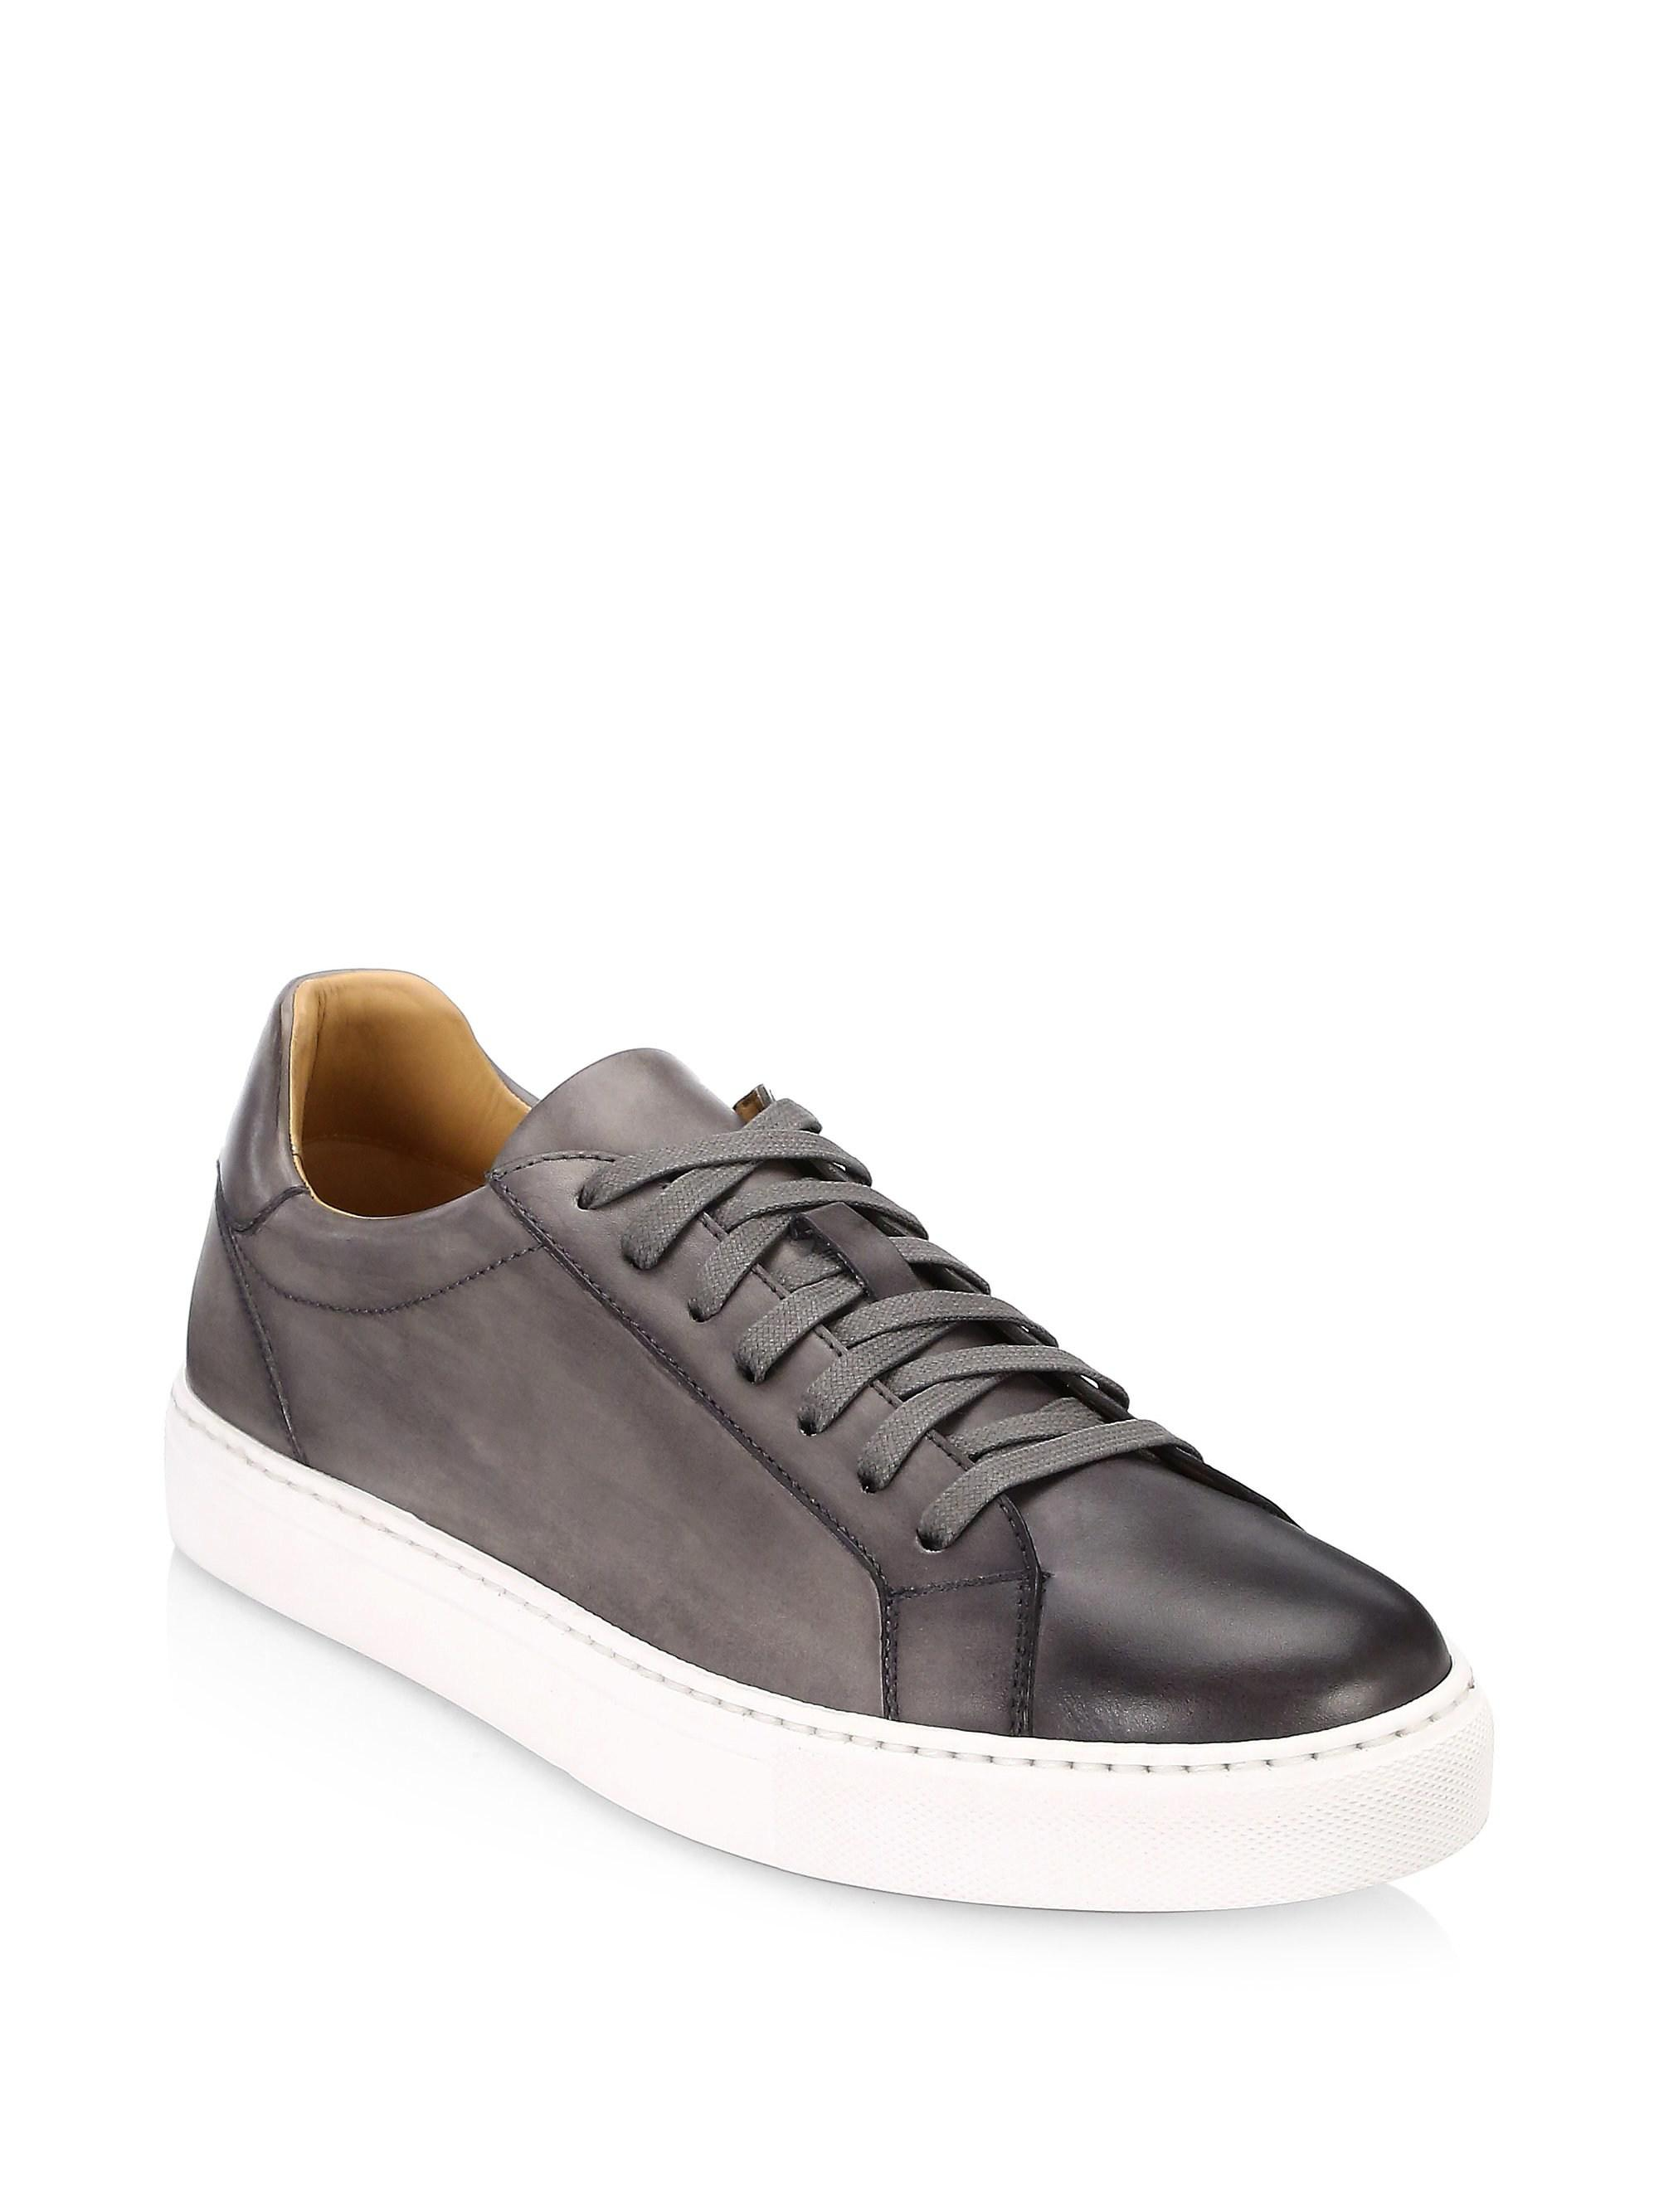 Saks Fifth AvenueCOLLECTION BY MAGNANNI Burnished Leather Lace-Up Sneaker YOrRjb